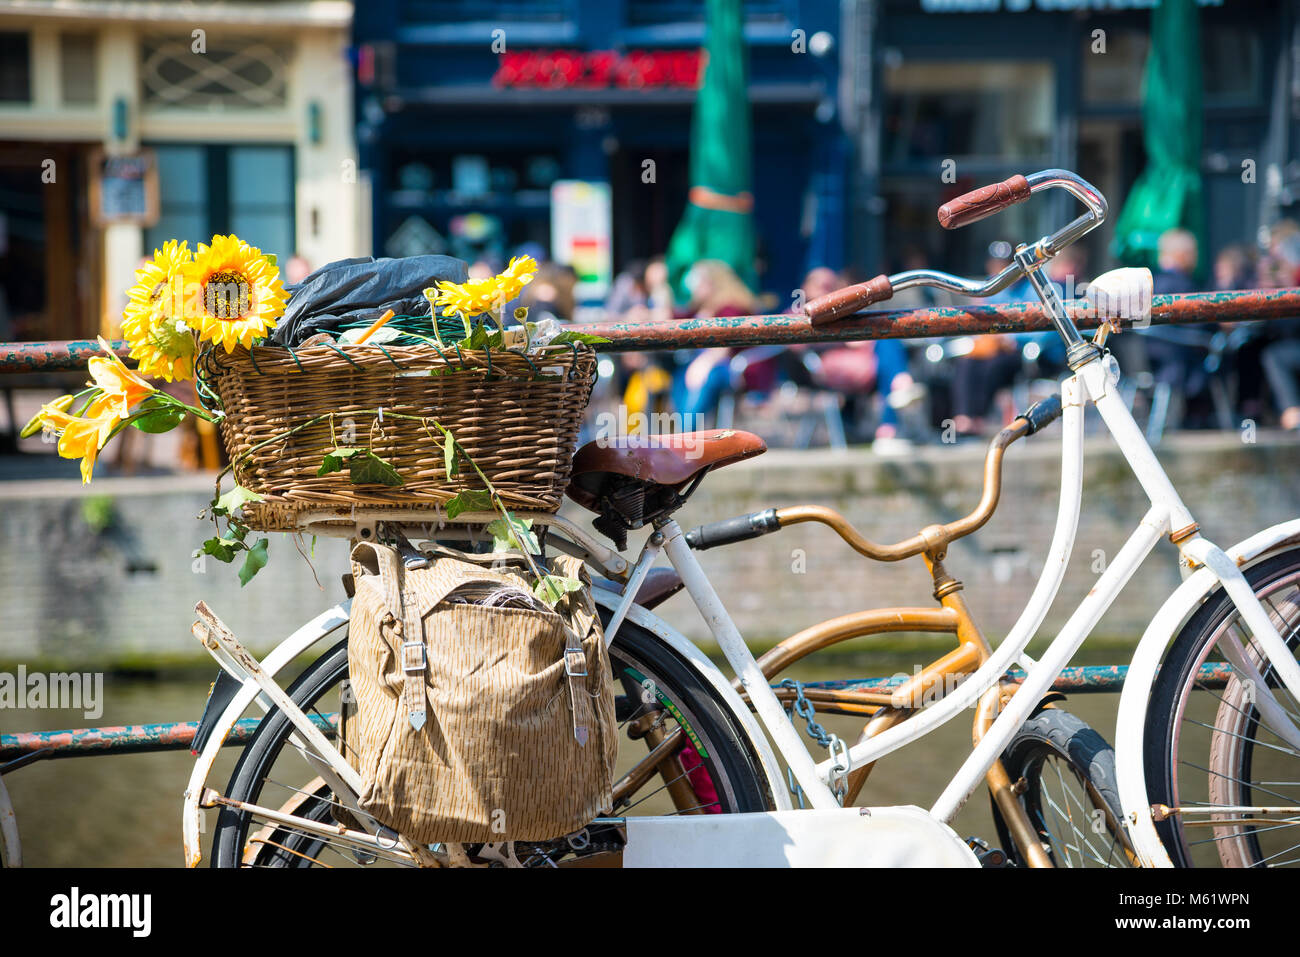 Spring View Of Old Bicycle With Flowers On A Canal Bridge In The